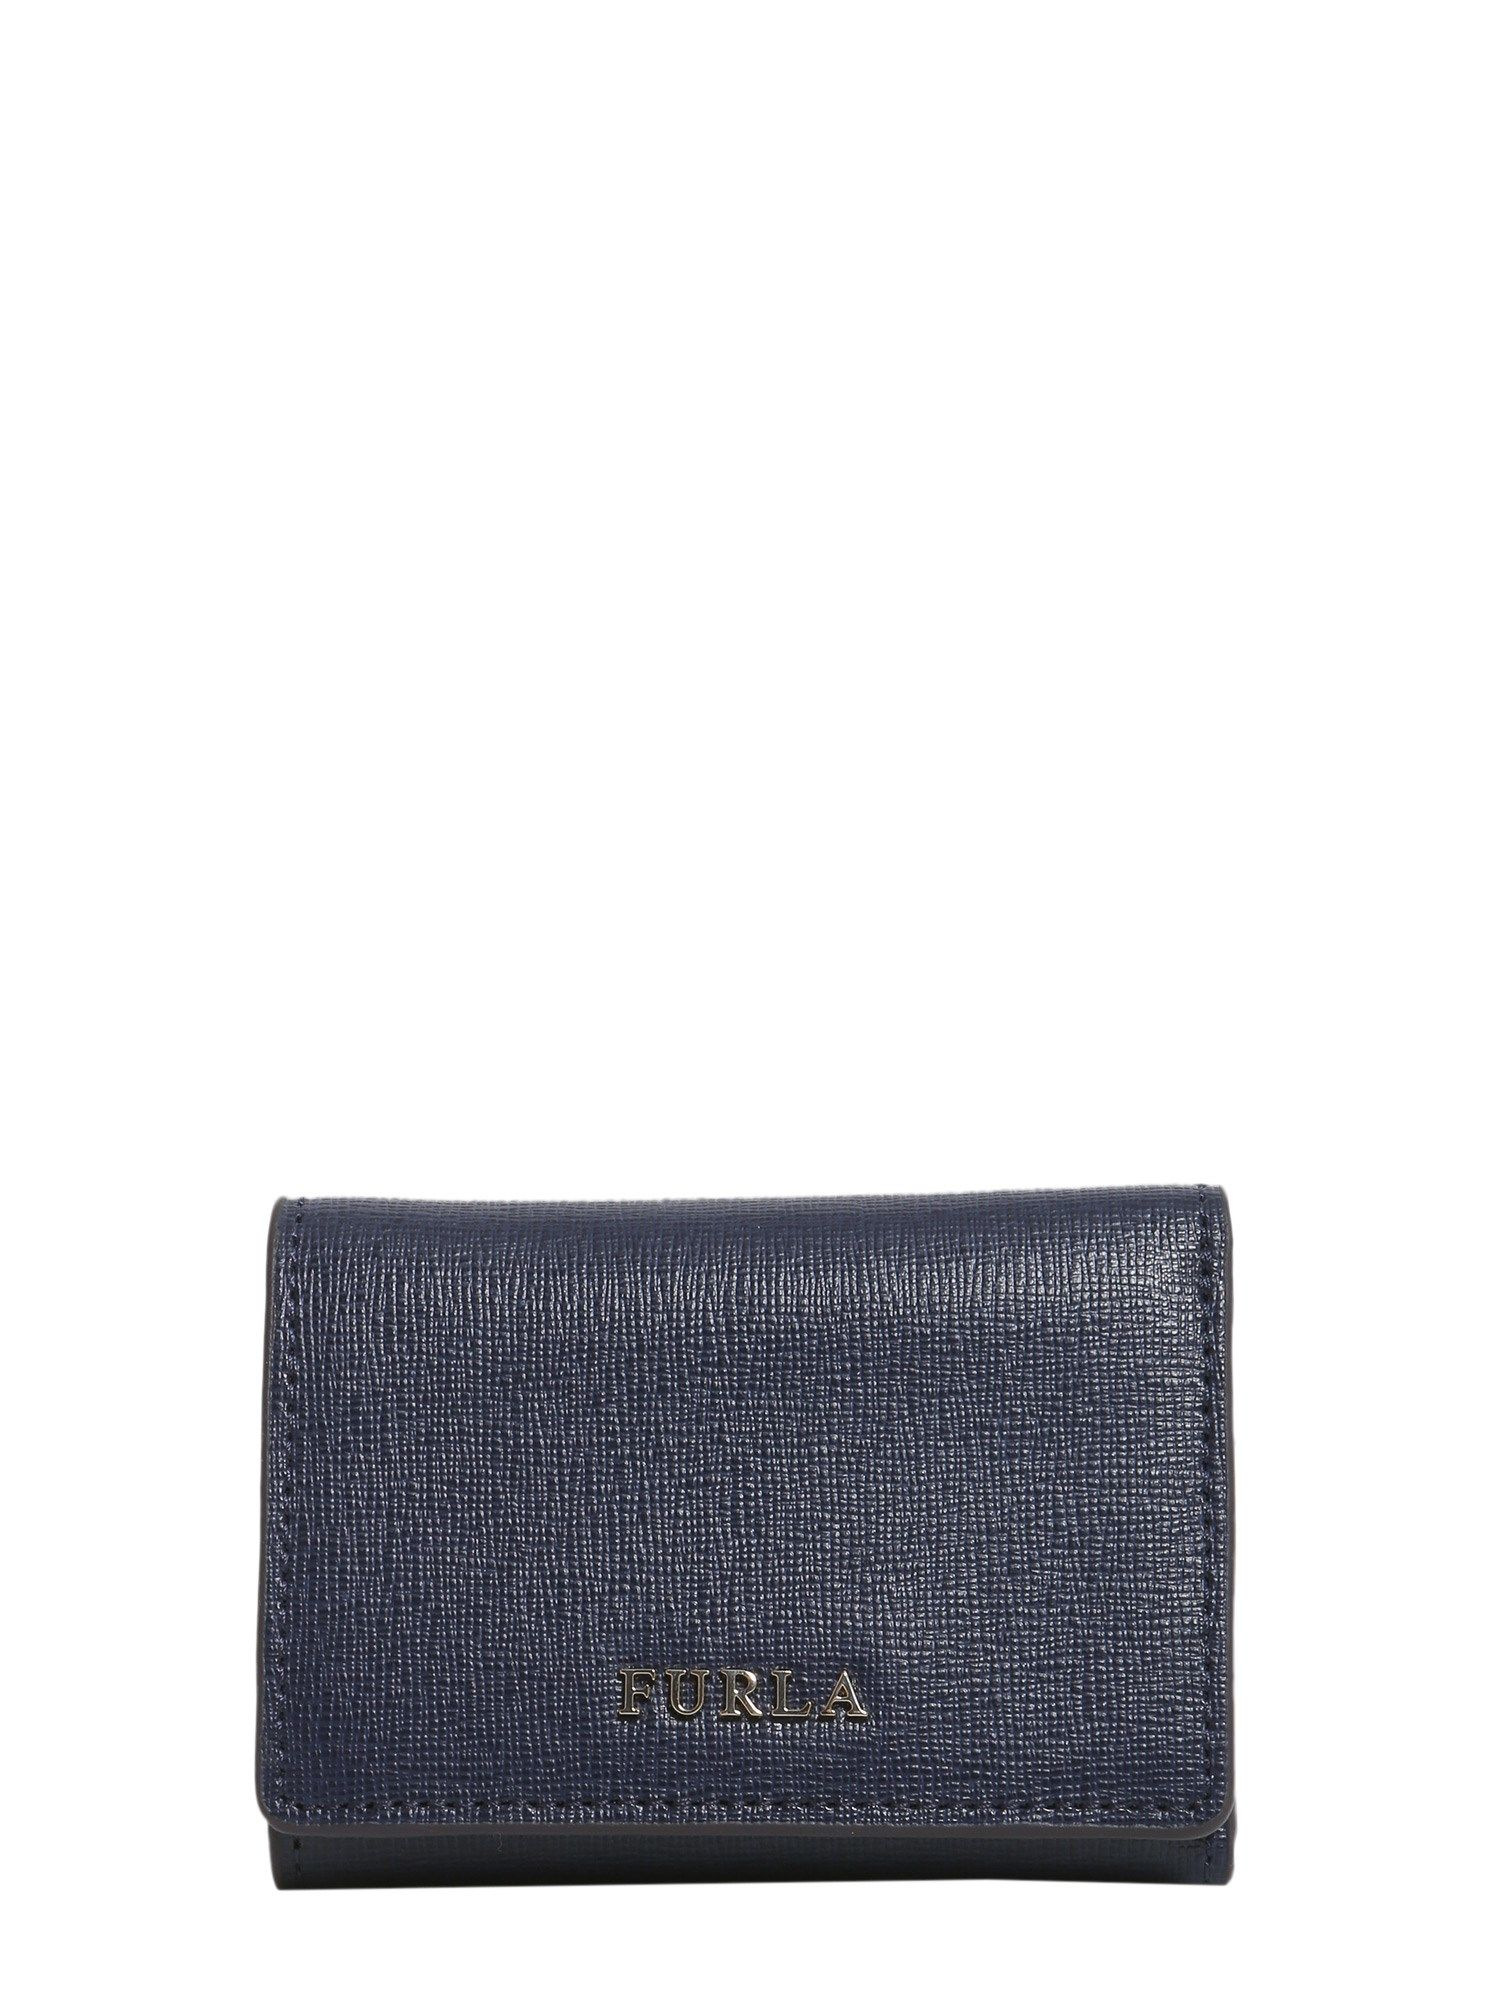 Babylon Small Trifold Wallet